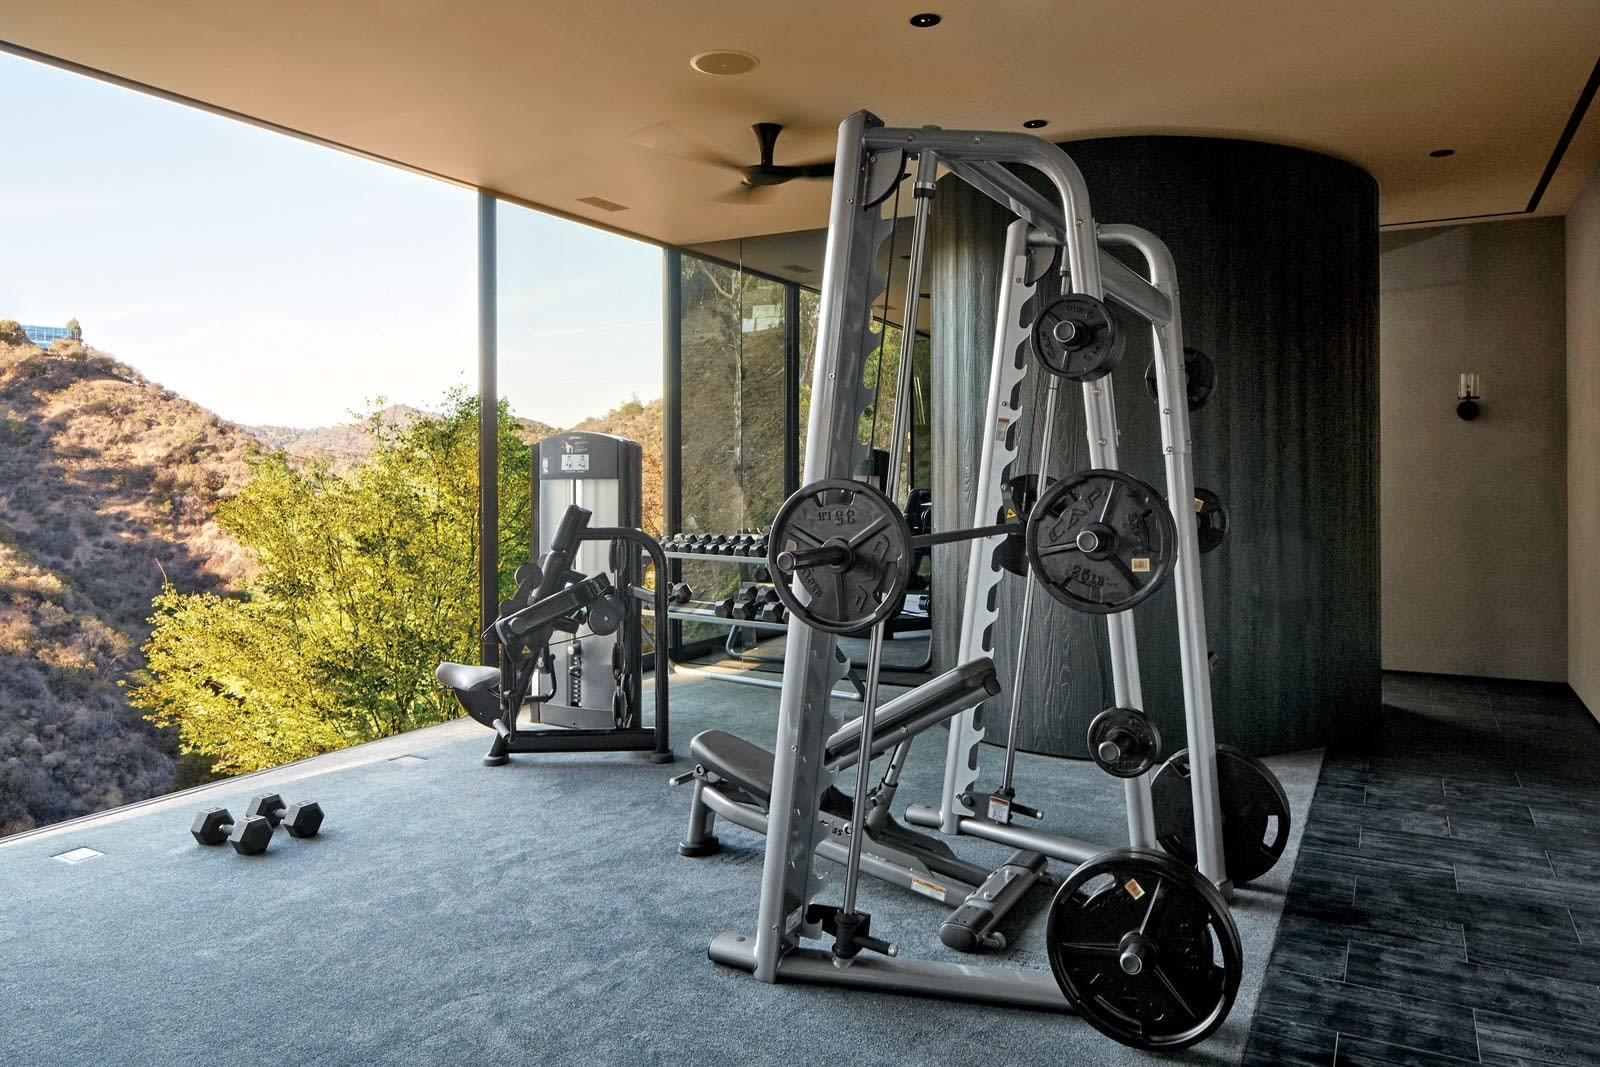 Home gyms that will motivate you to stick with your New Year's fitness goals